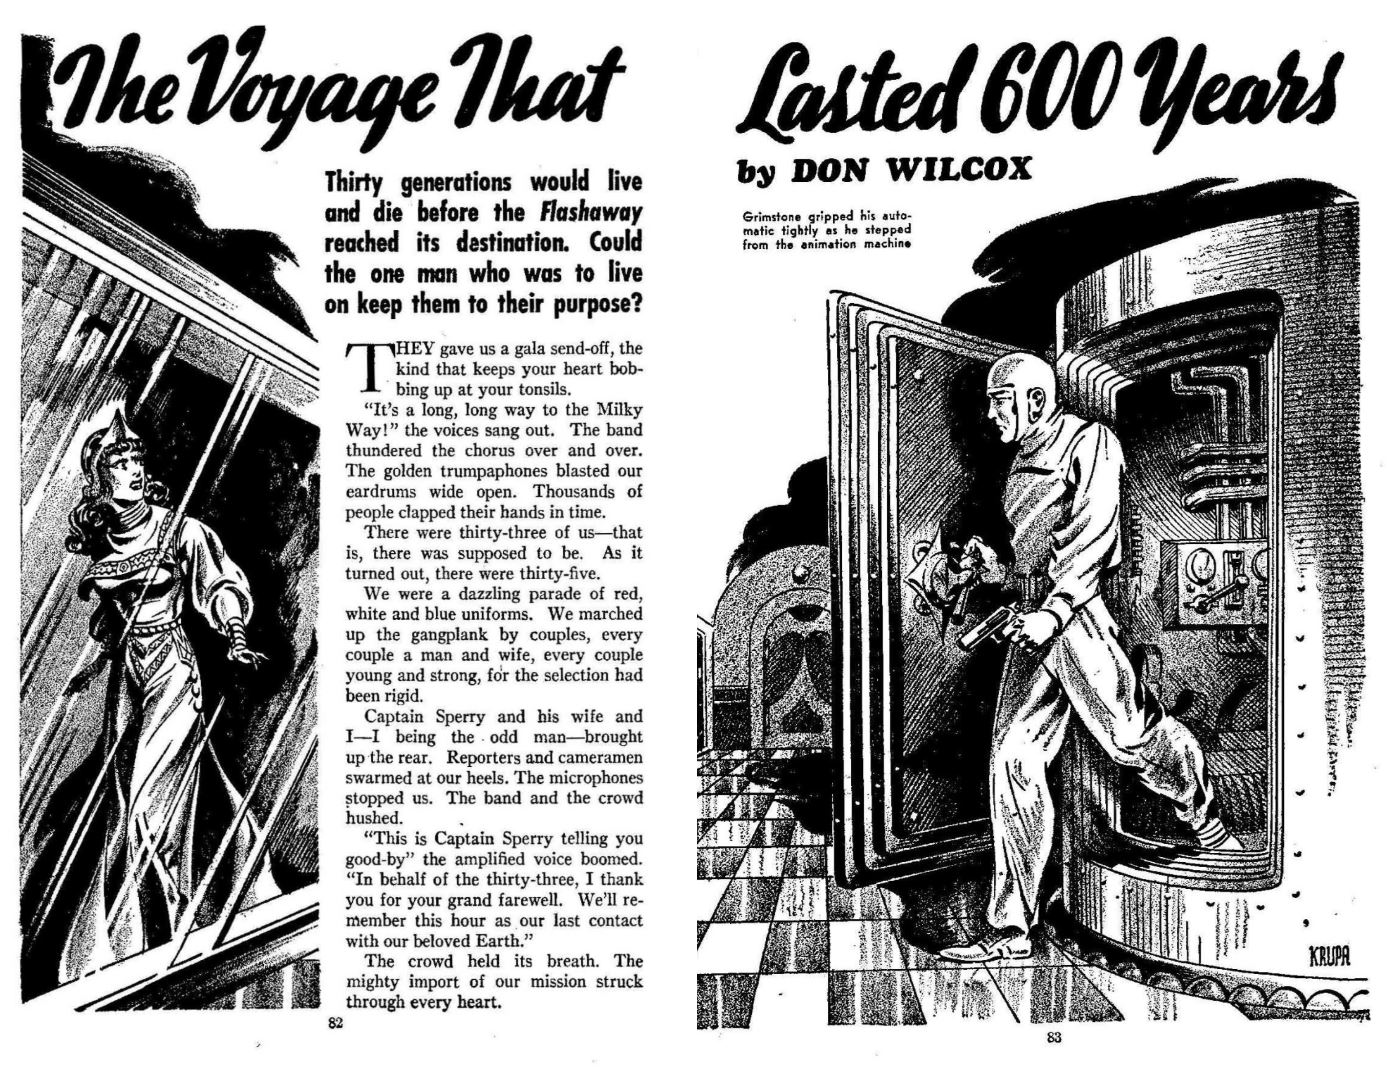 The Voyage that Lasted 600 Years by Don Wilcox 1940